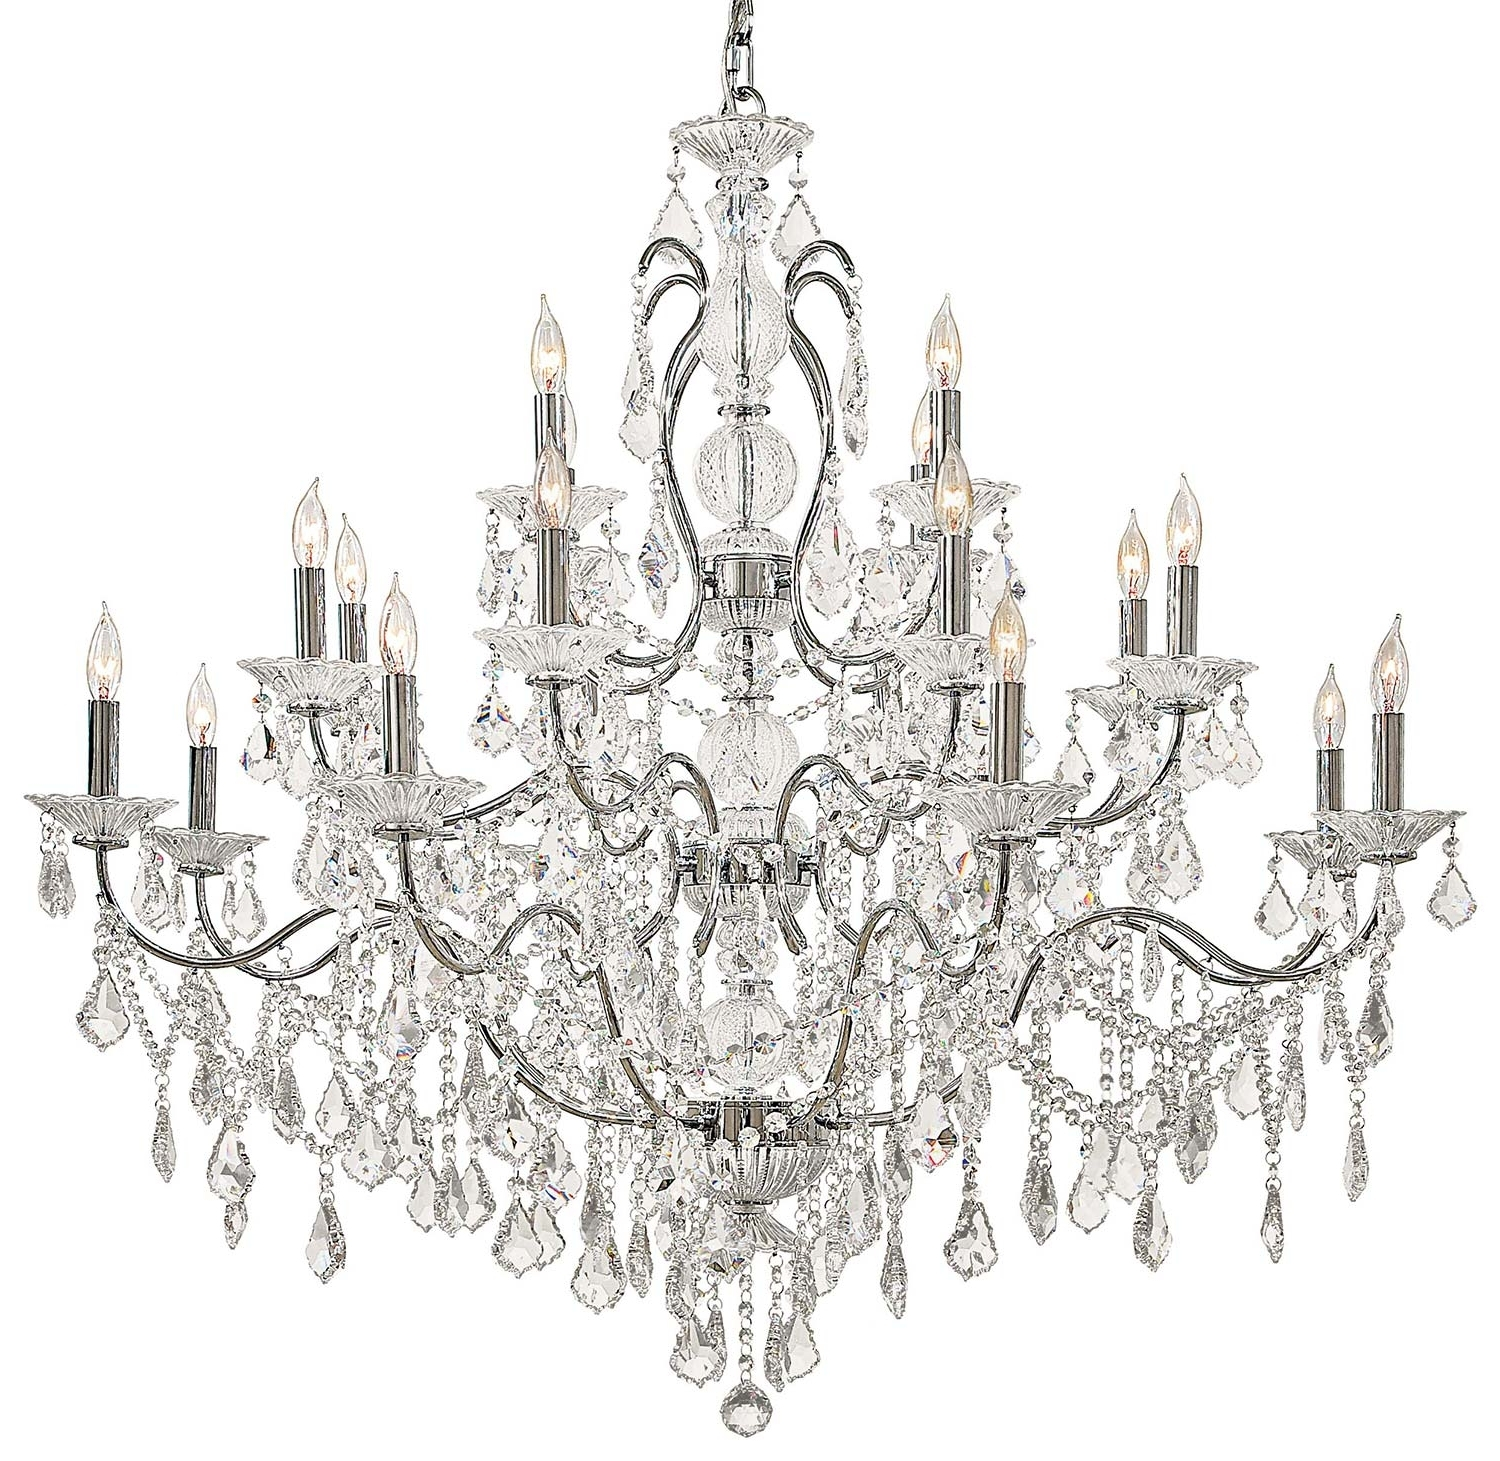 Light : Chandelier Crystals Vintage Php White Dining Crystal Room Regarding Well Known Chandeliers Vintage (View 12 of 20)